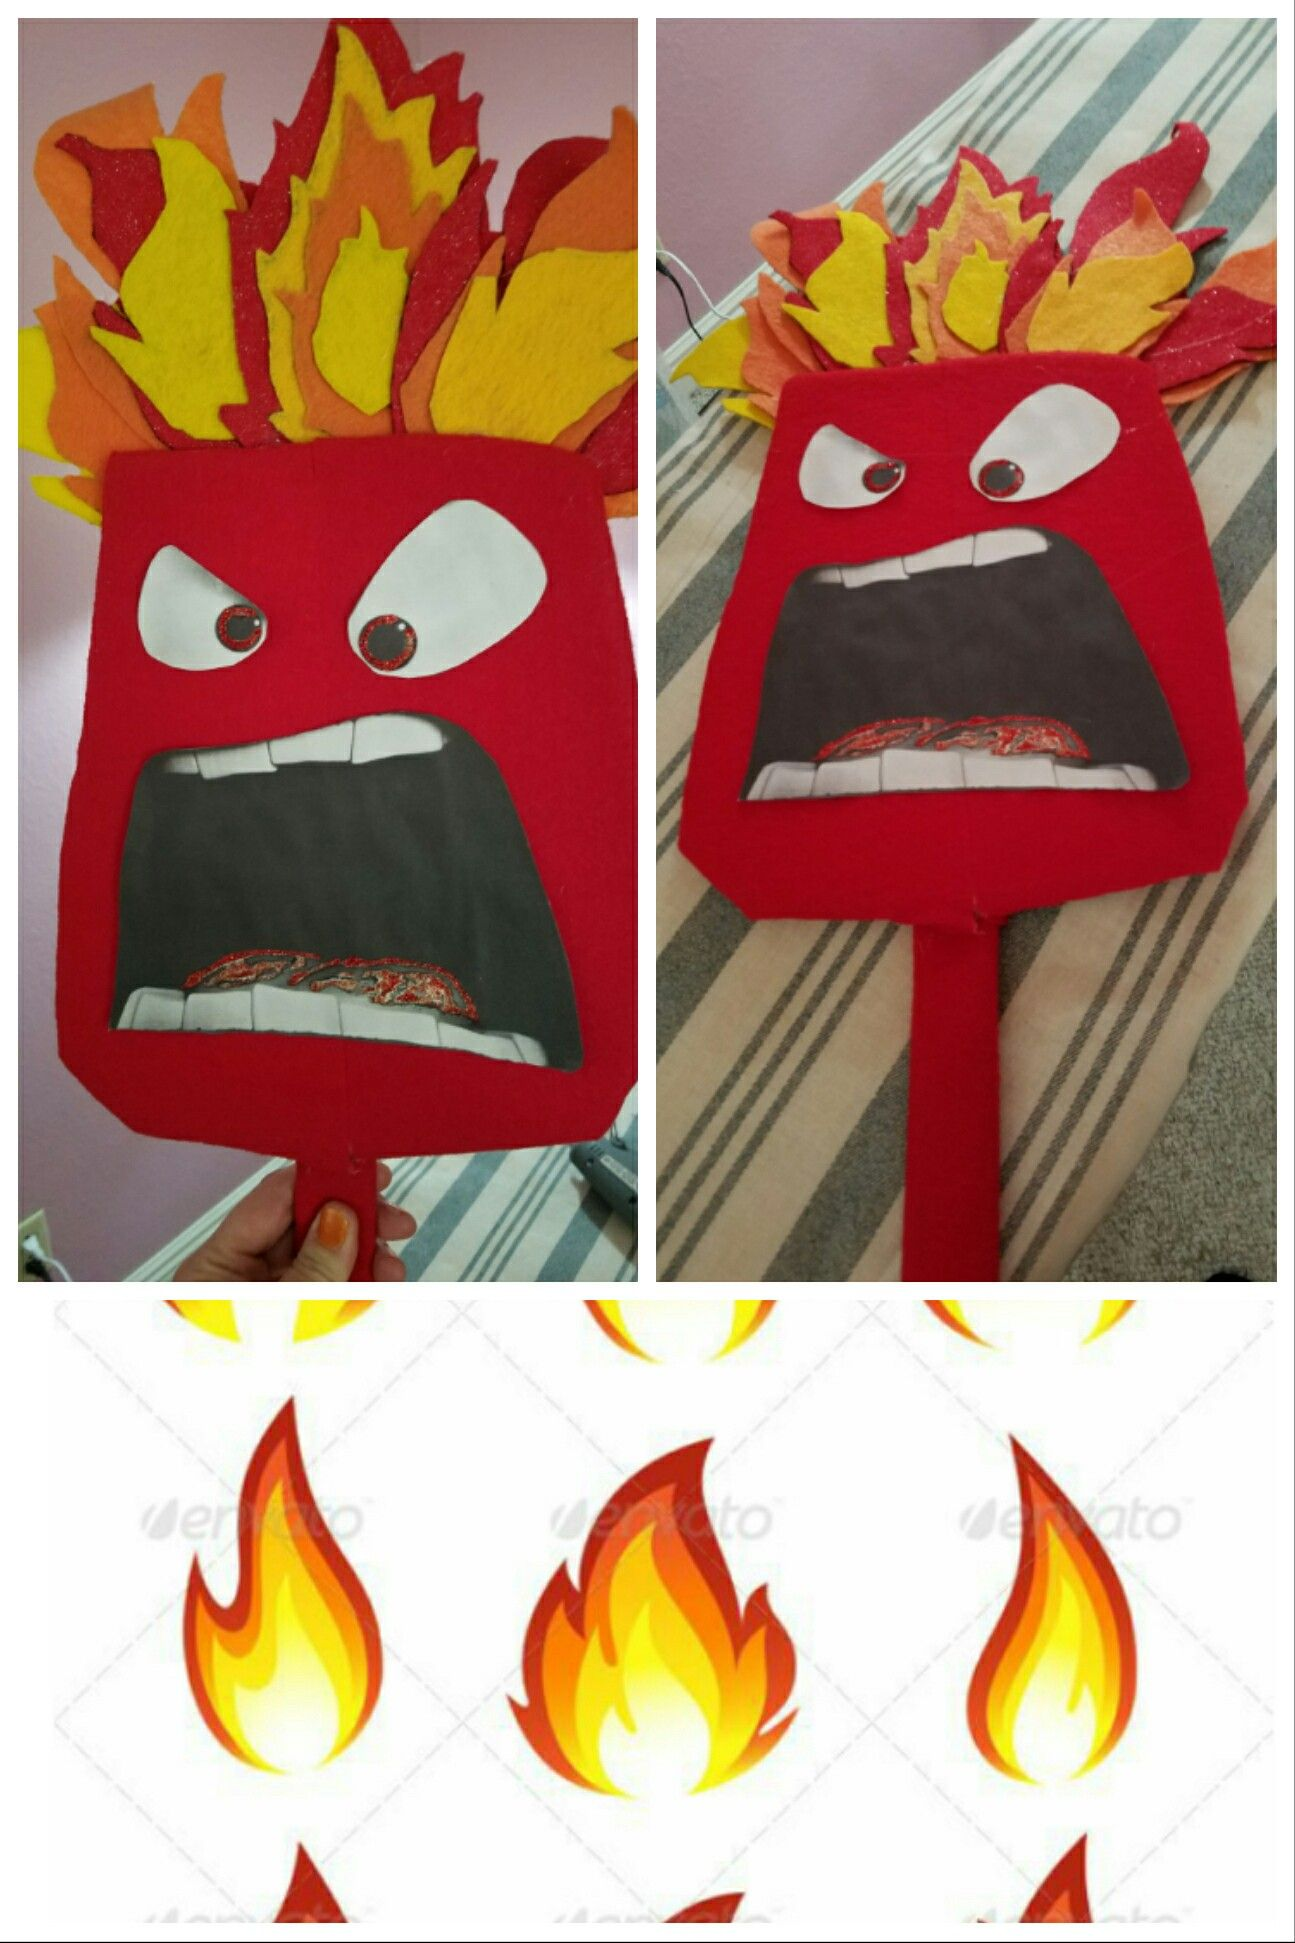 Anger DIY mask from Inside Out    this was fun to make, but